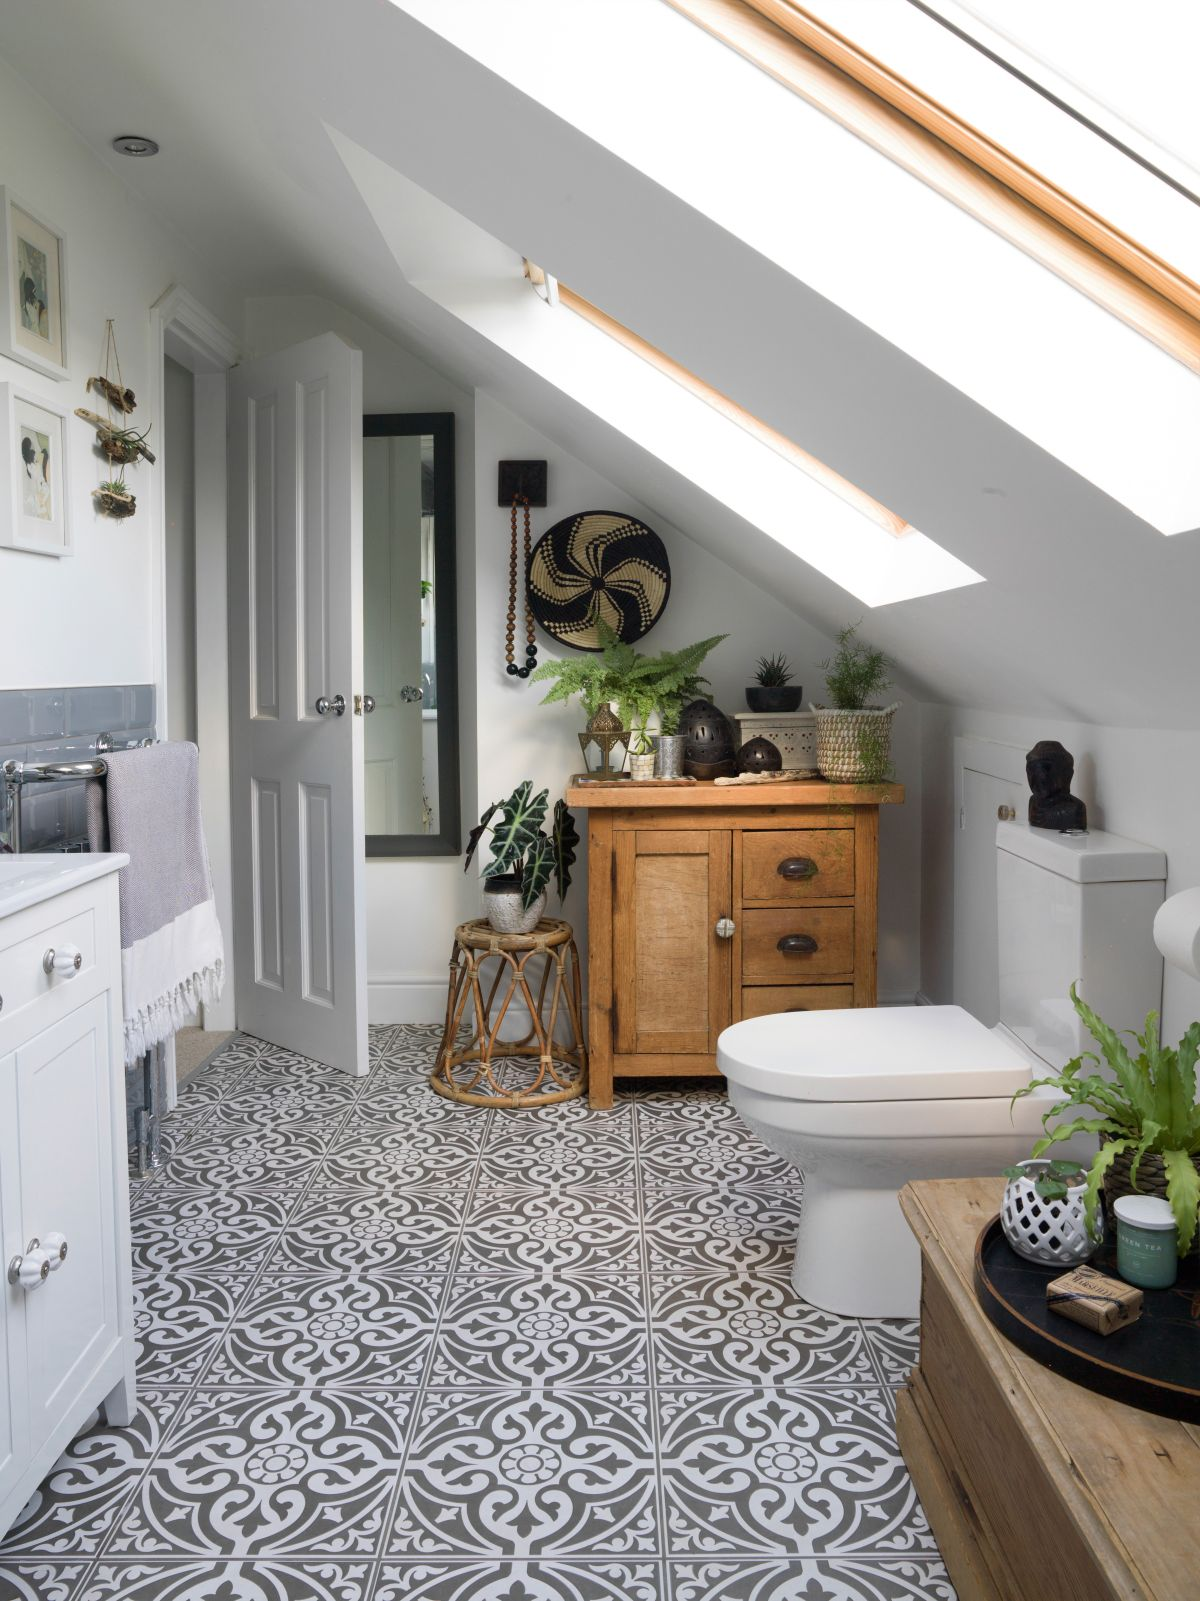 Short on space? These 30 small bathroom design ideas will inspire you